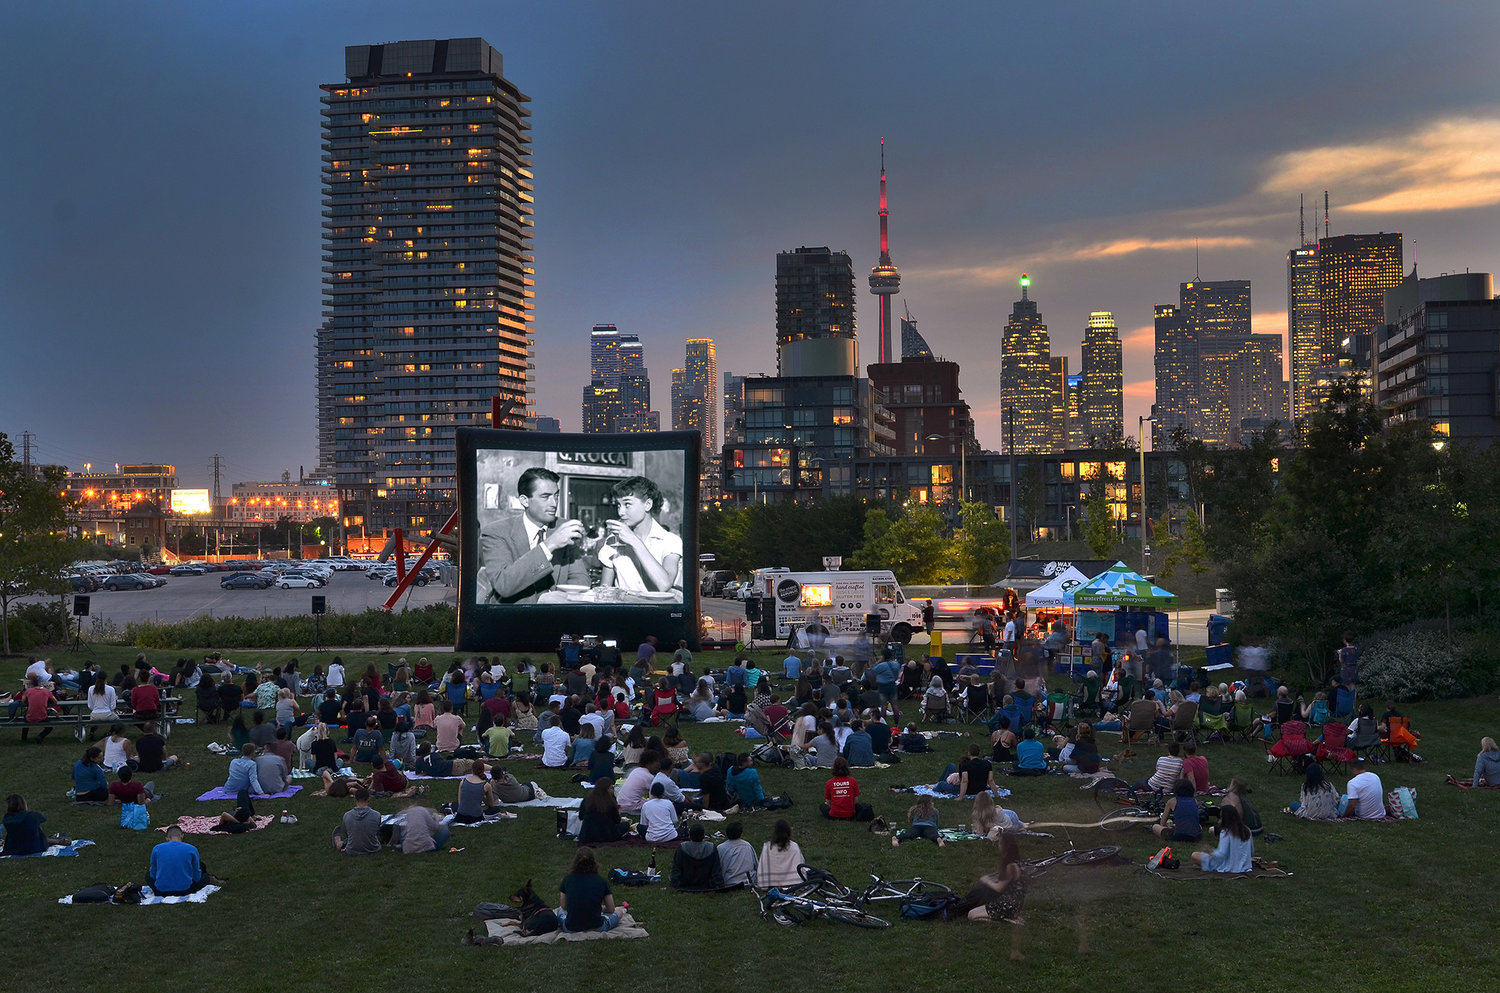 Toronto Outdoor Picture show playing a black and white movie on the grass beyond the Toronto skyline